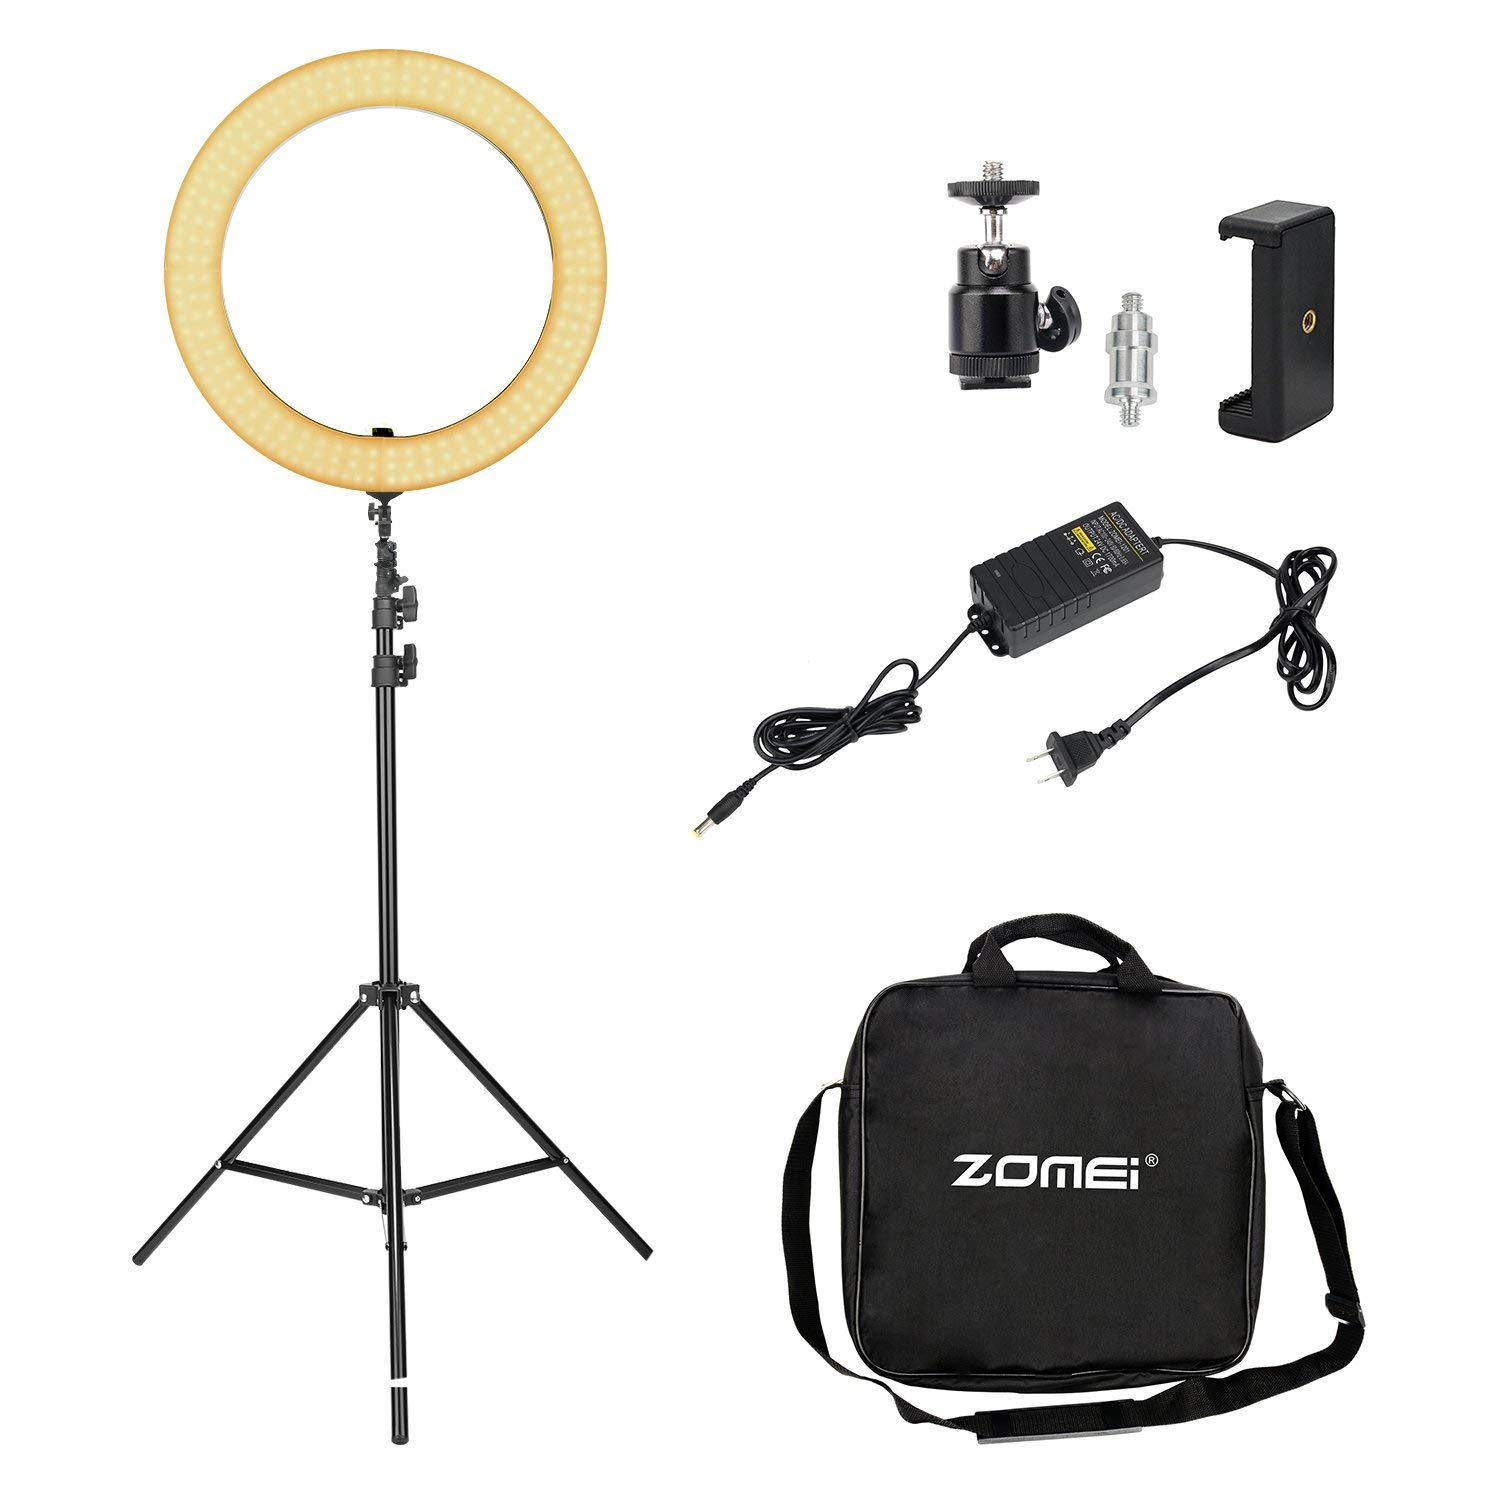 LED Ring Light, Zomei 18 Inches Lighting Kit with Stand for Smartphone and Youtube Video Shooting, 2700-5500K Dimmable Makeup Light with Phone Adapter, Hot Shoe and Carrying bag